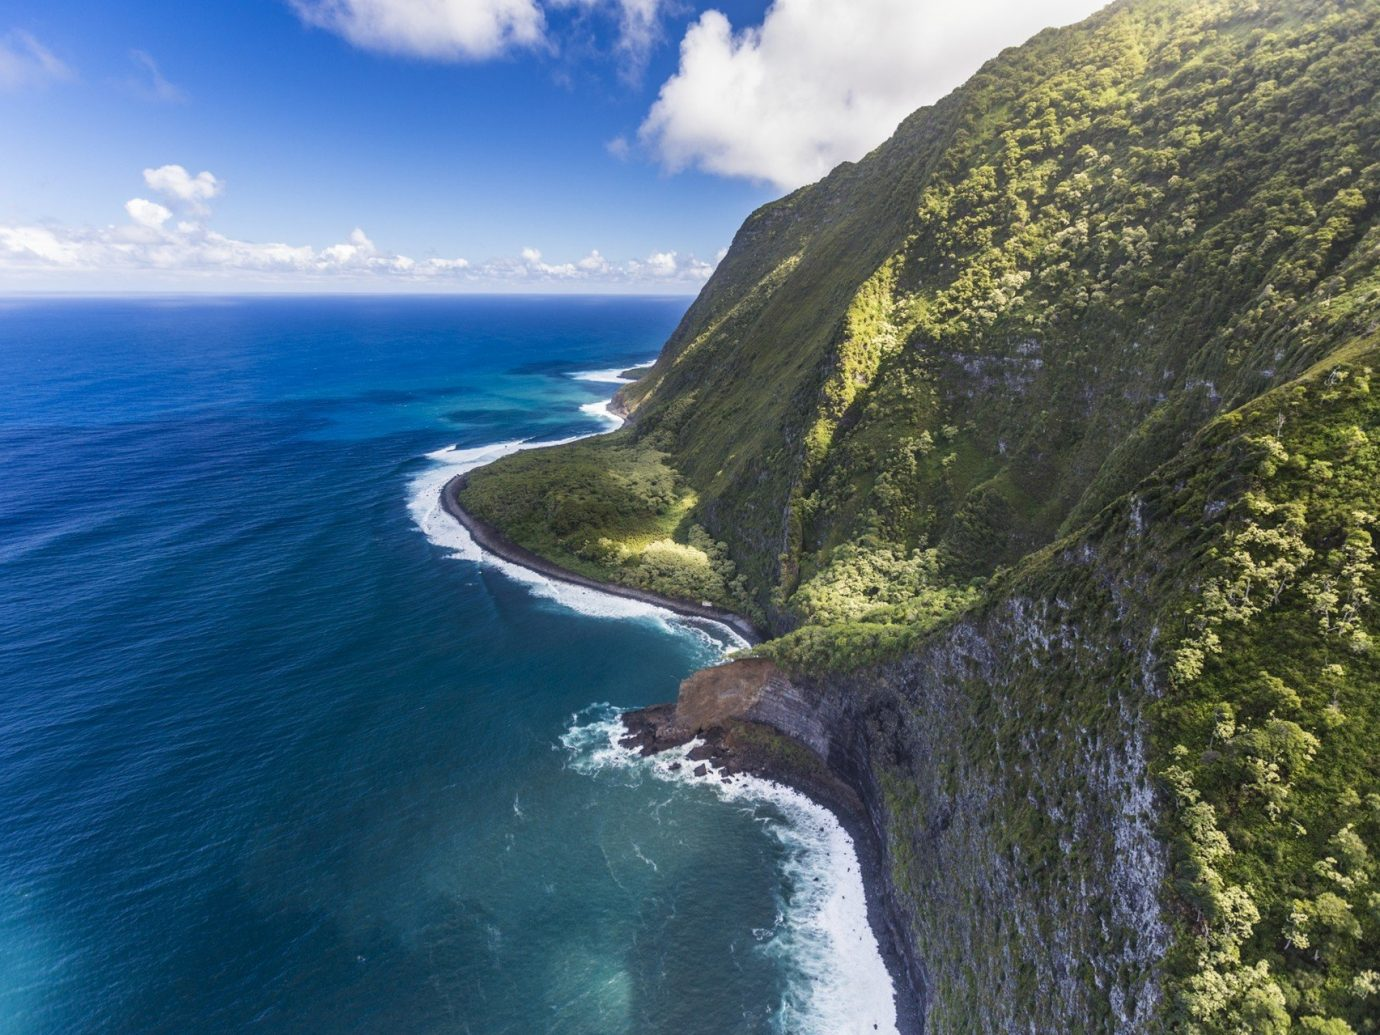 Offbeat outdoor water sky Nature Coast cliff landform geographical feature mountain Sea body of water Ocean terrain fjord cape extreme sport bay wave islet